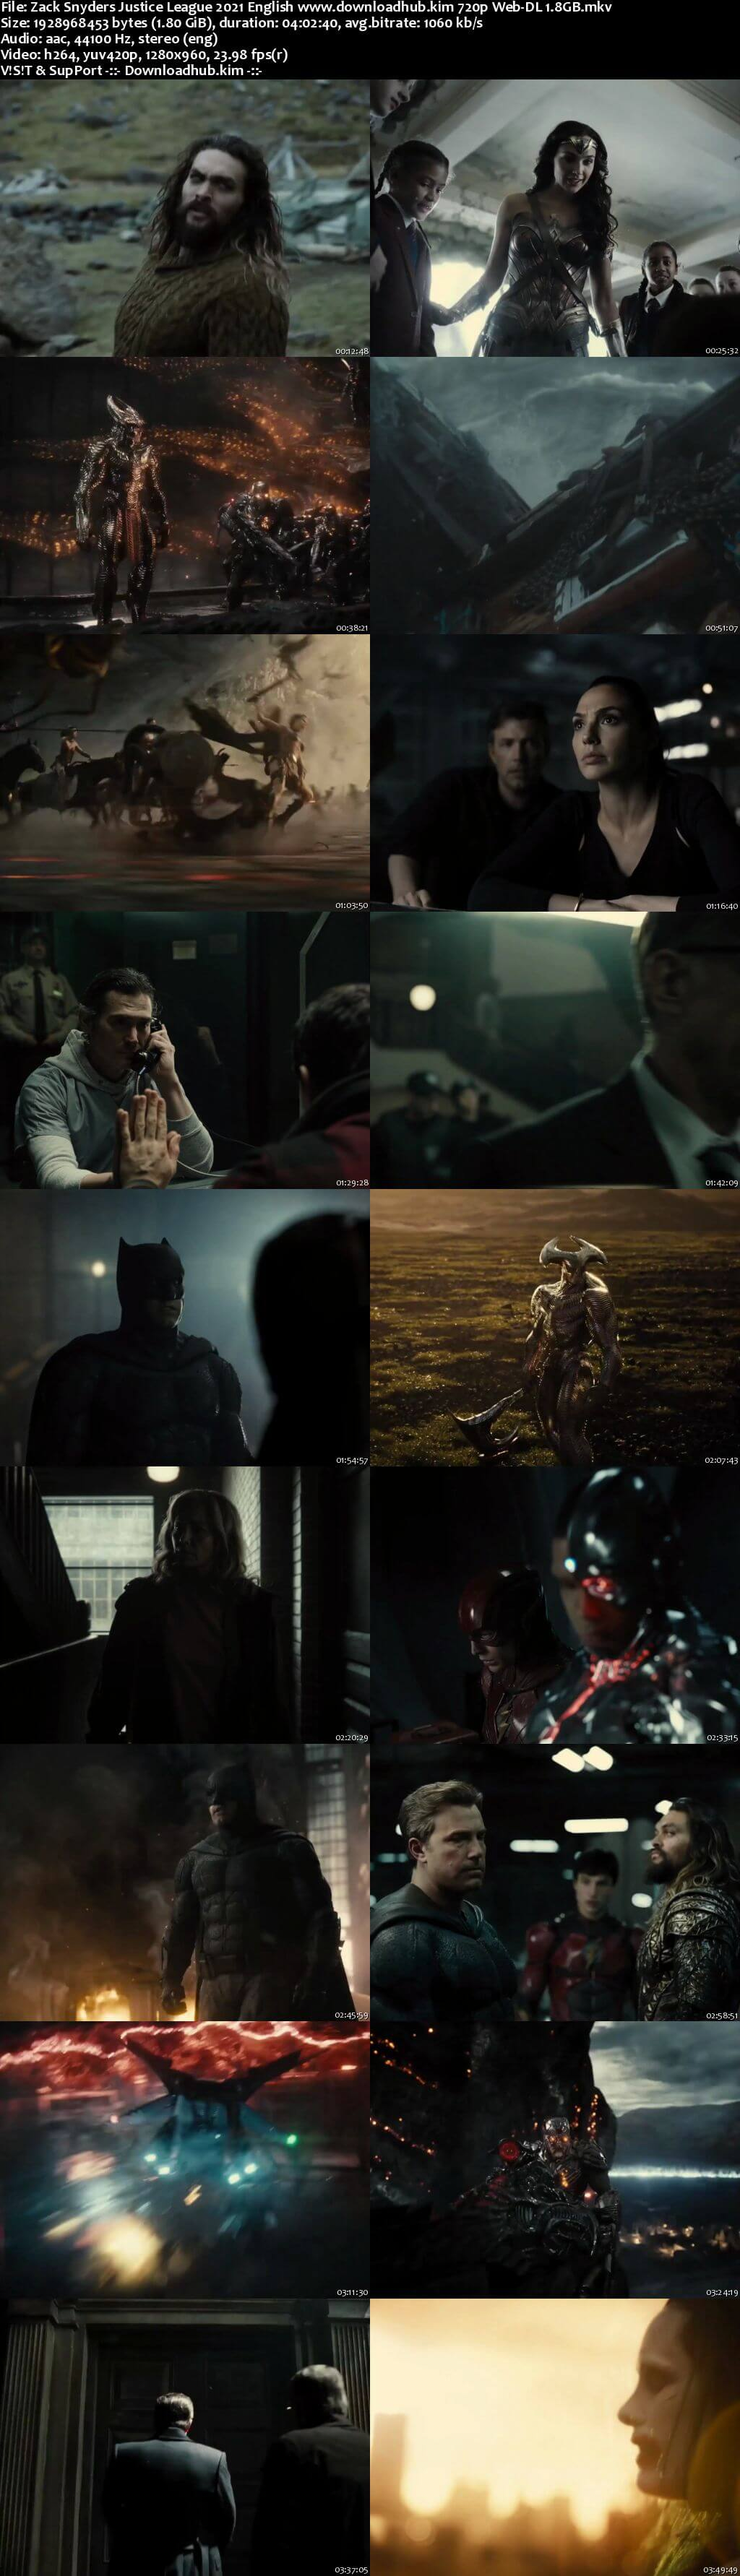 Zack Snyders Justice League 2021 English 720p Web-DL 1.8GB